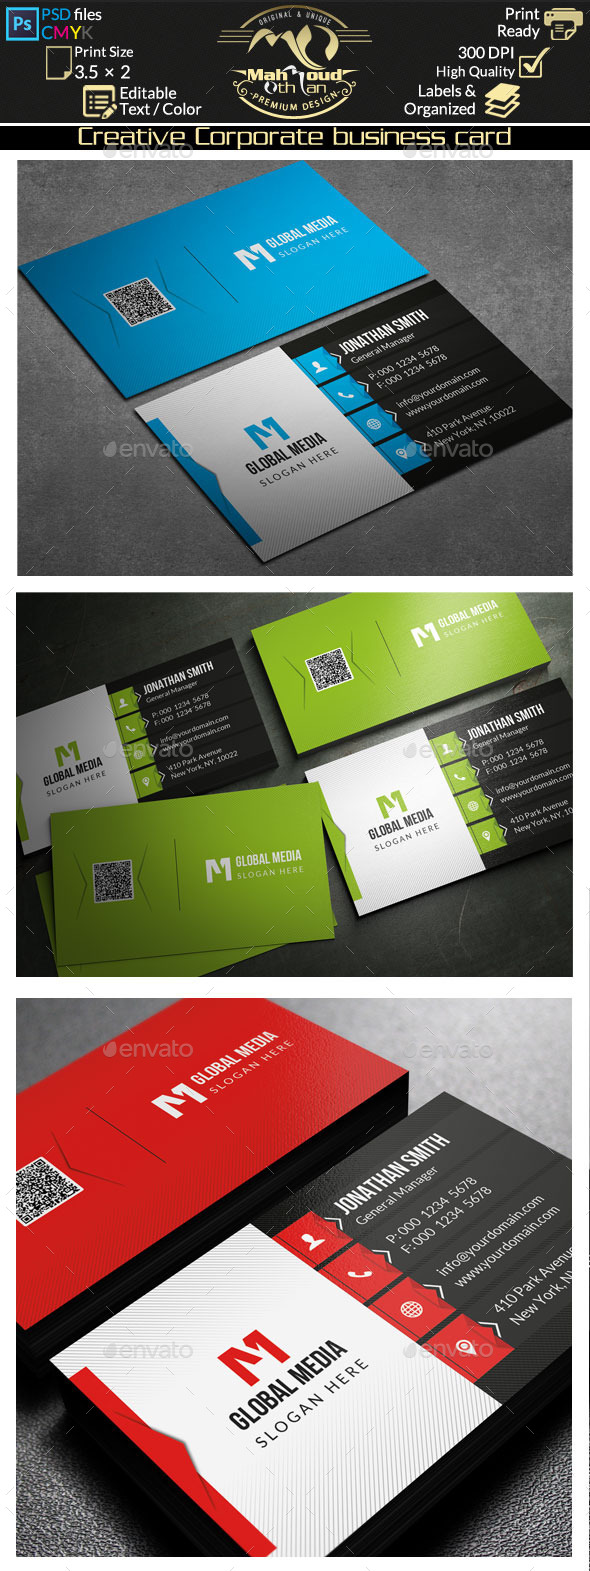 Creative Corporate Business Card 75 - Corporate Business Cards